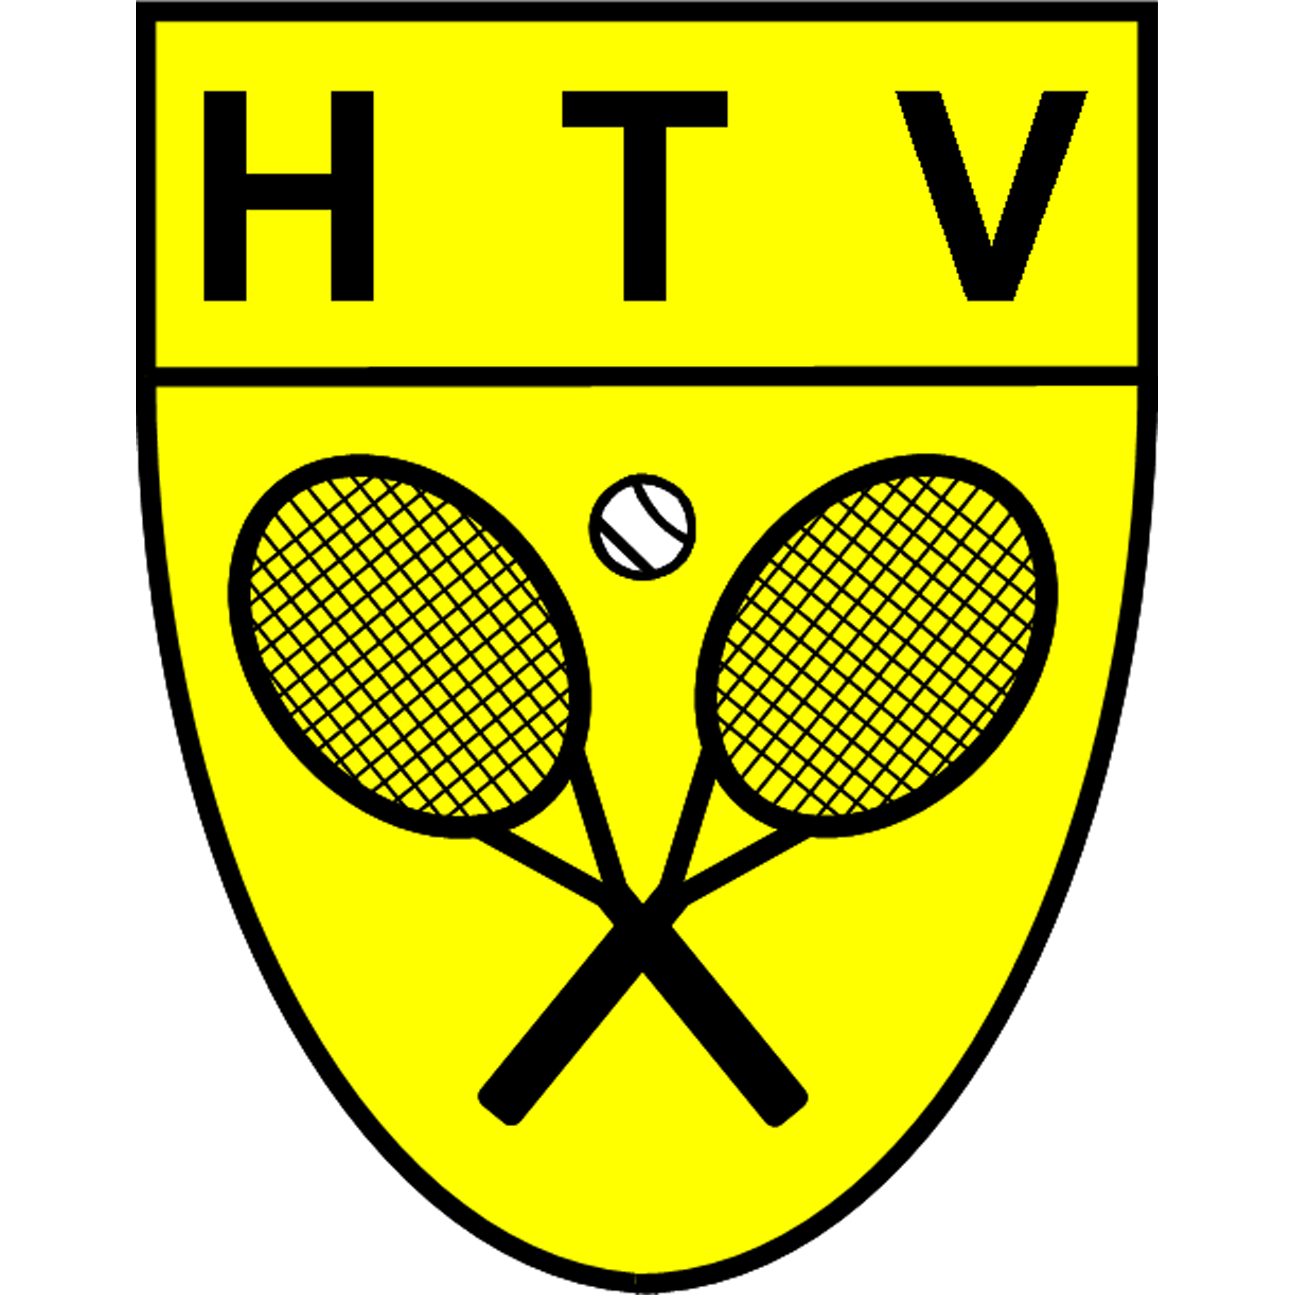 Halsterse Tennis Vereniging